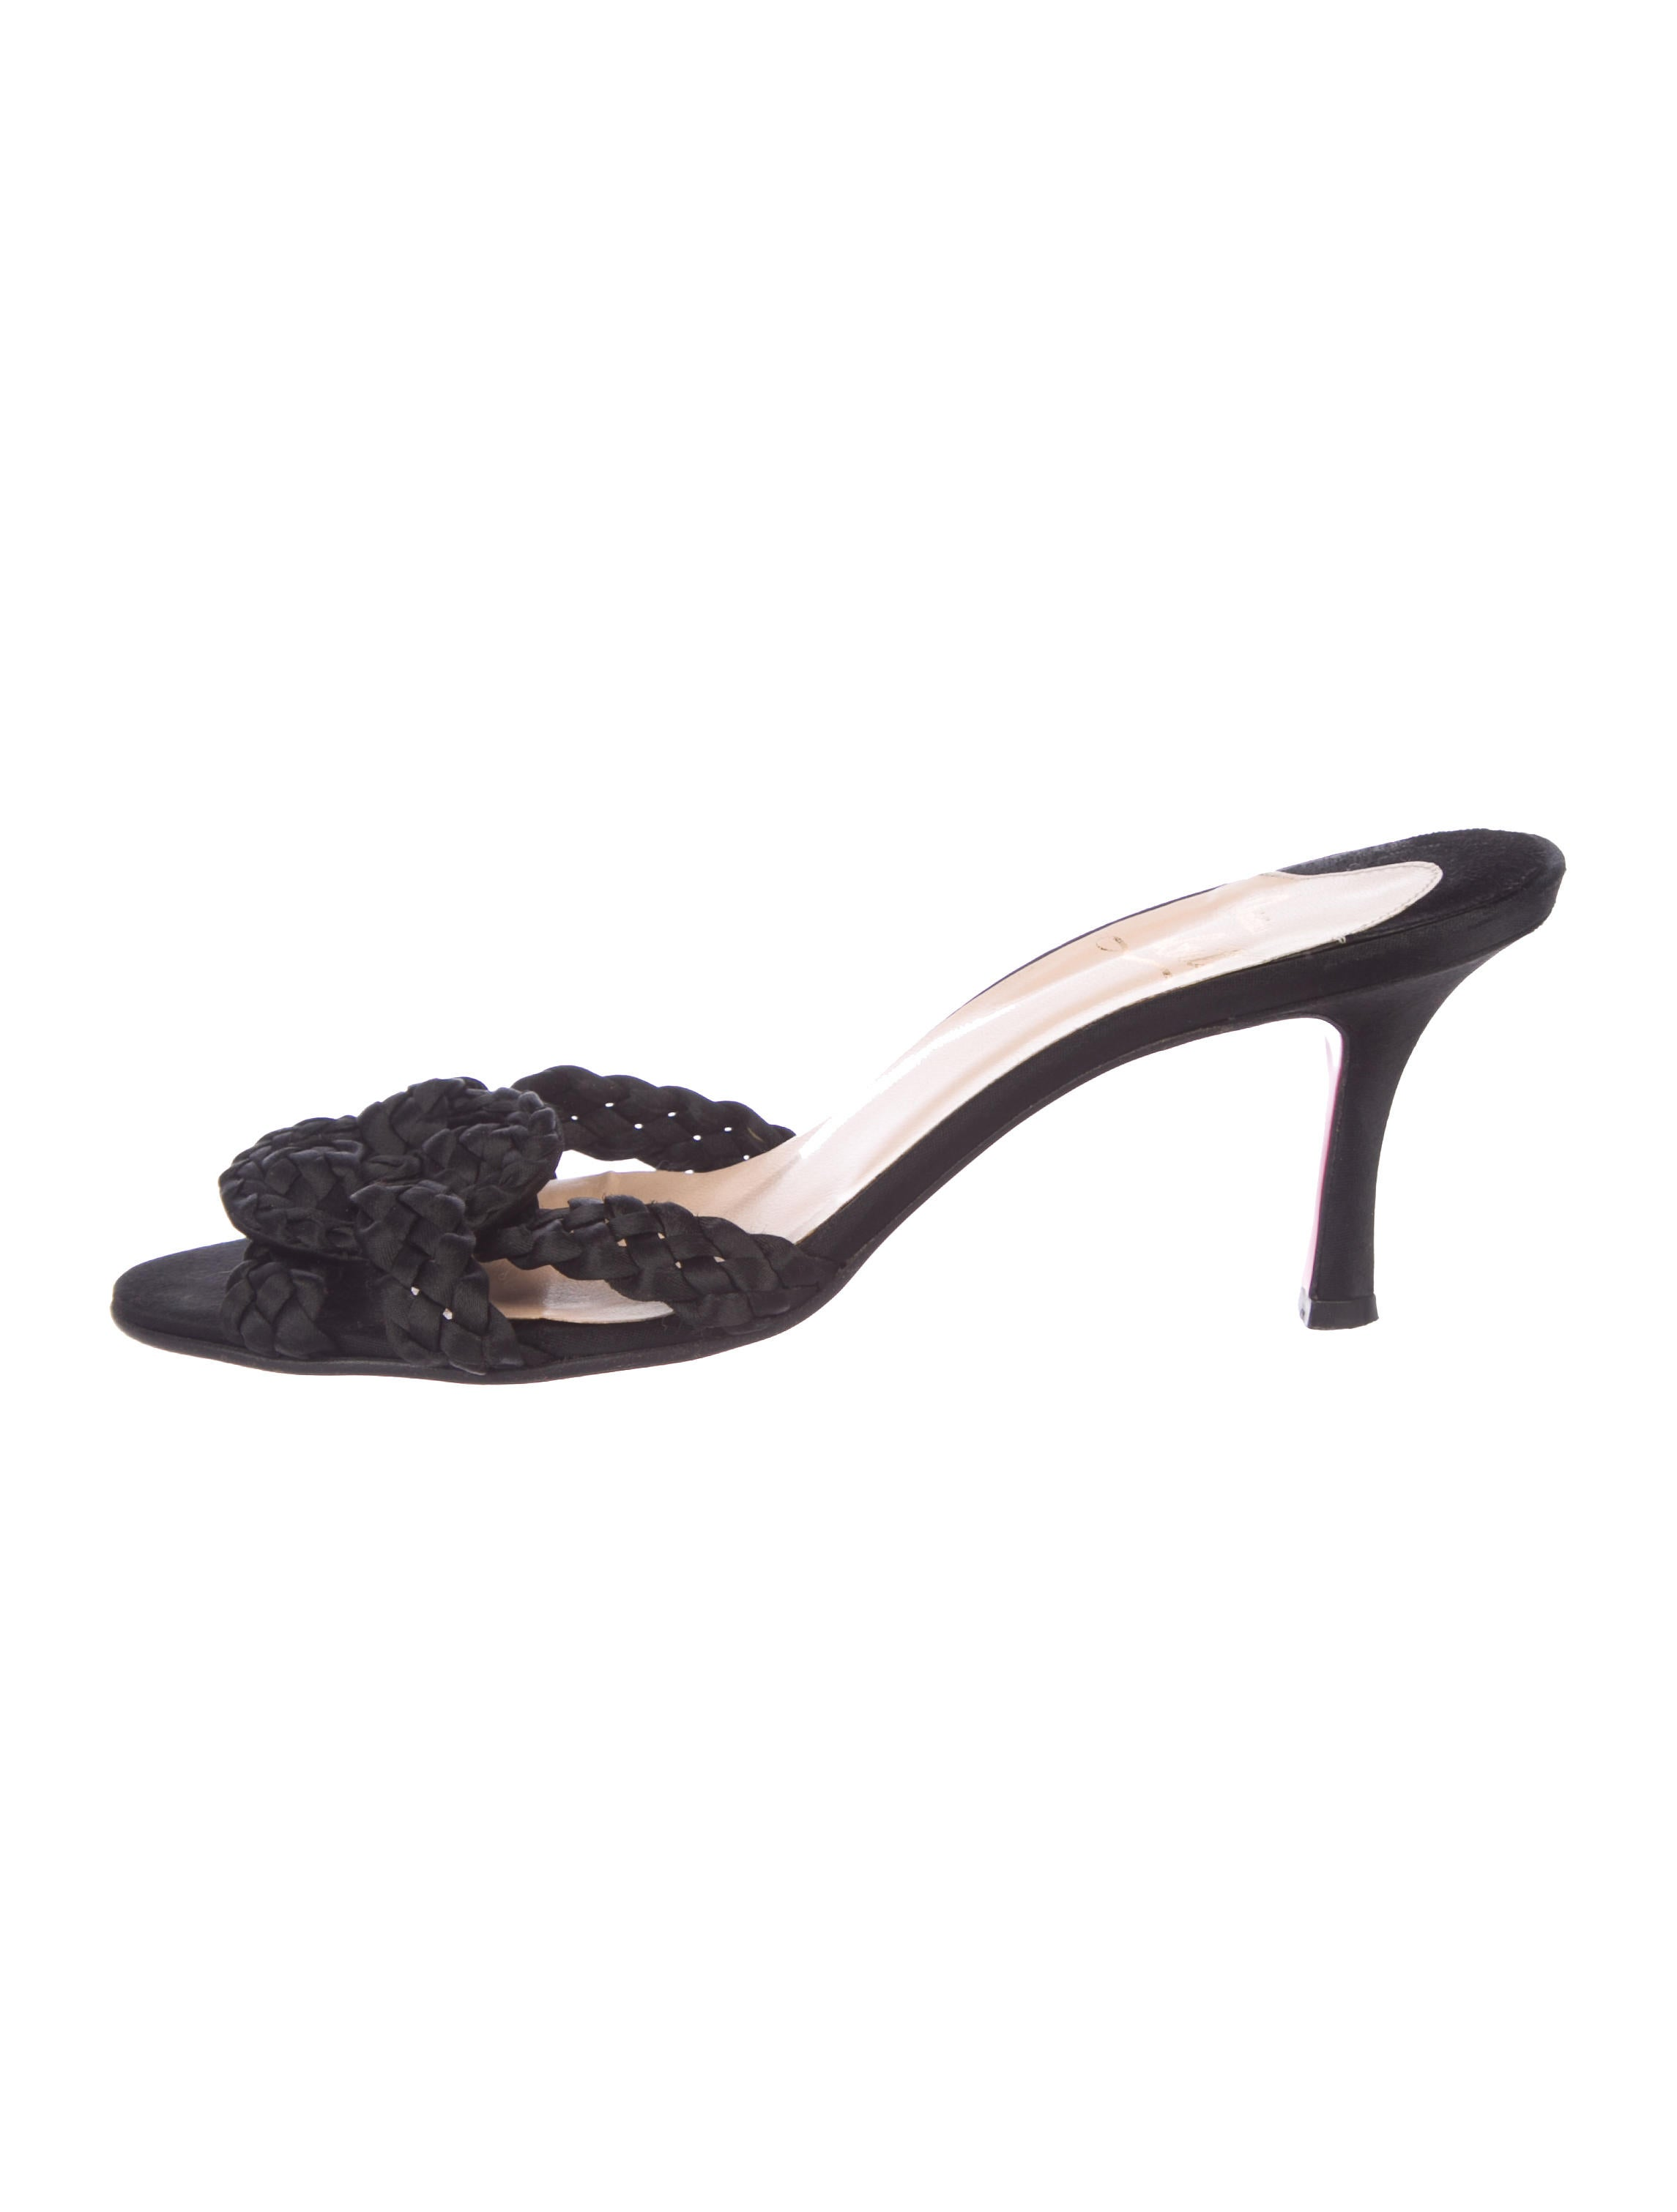 christian louboutin shoes the realreal rh therealreal com